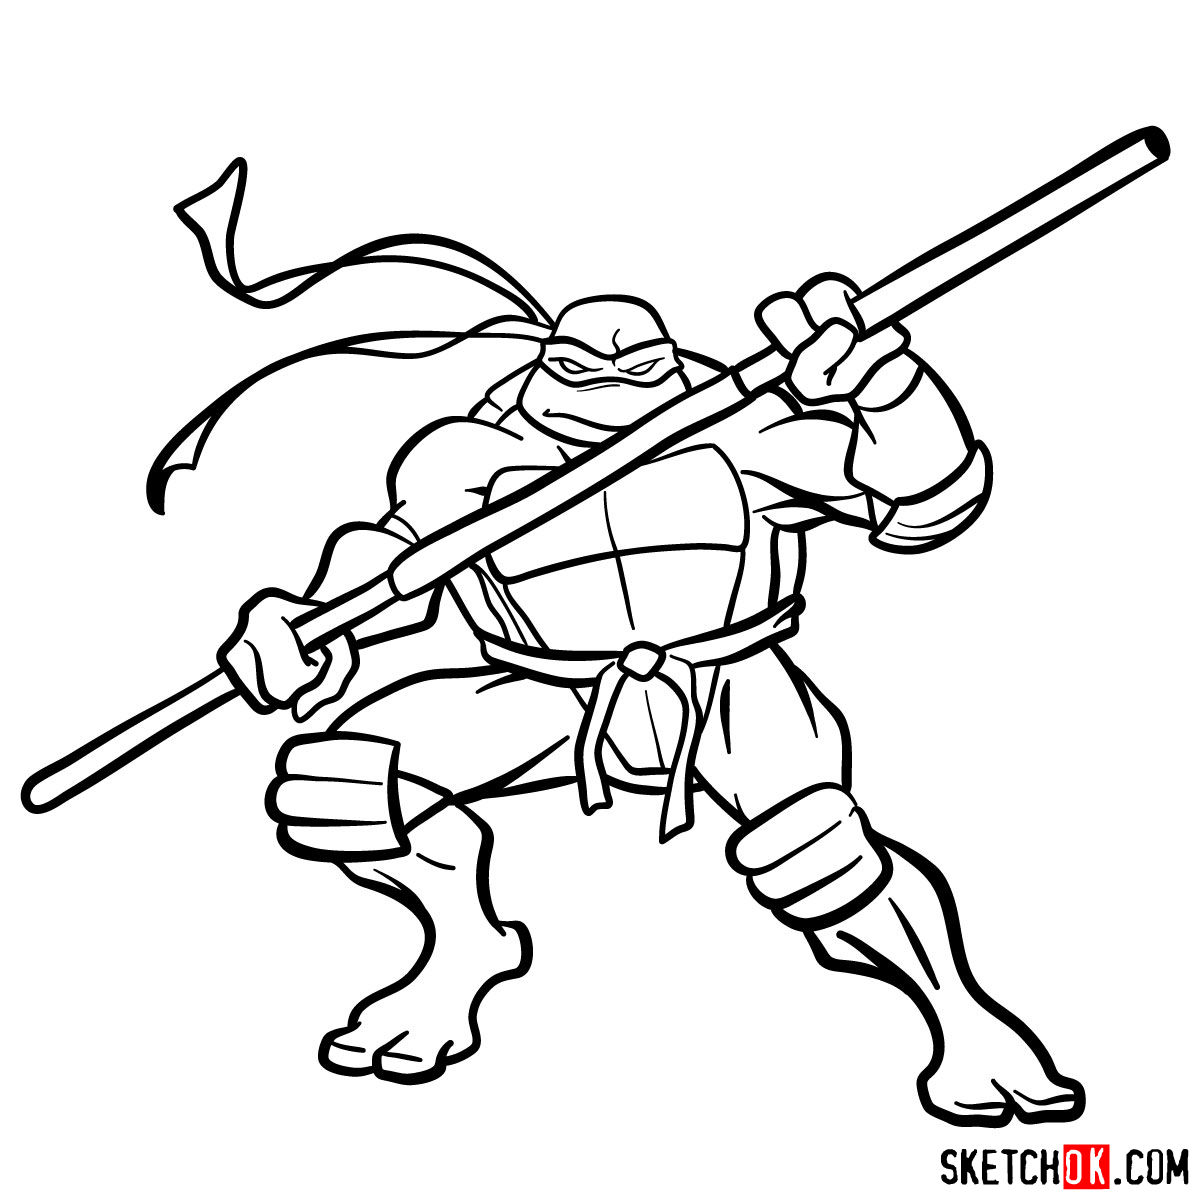 How to draw Donatello ninja turtle - Step by step drawing ...